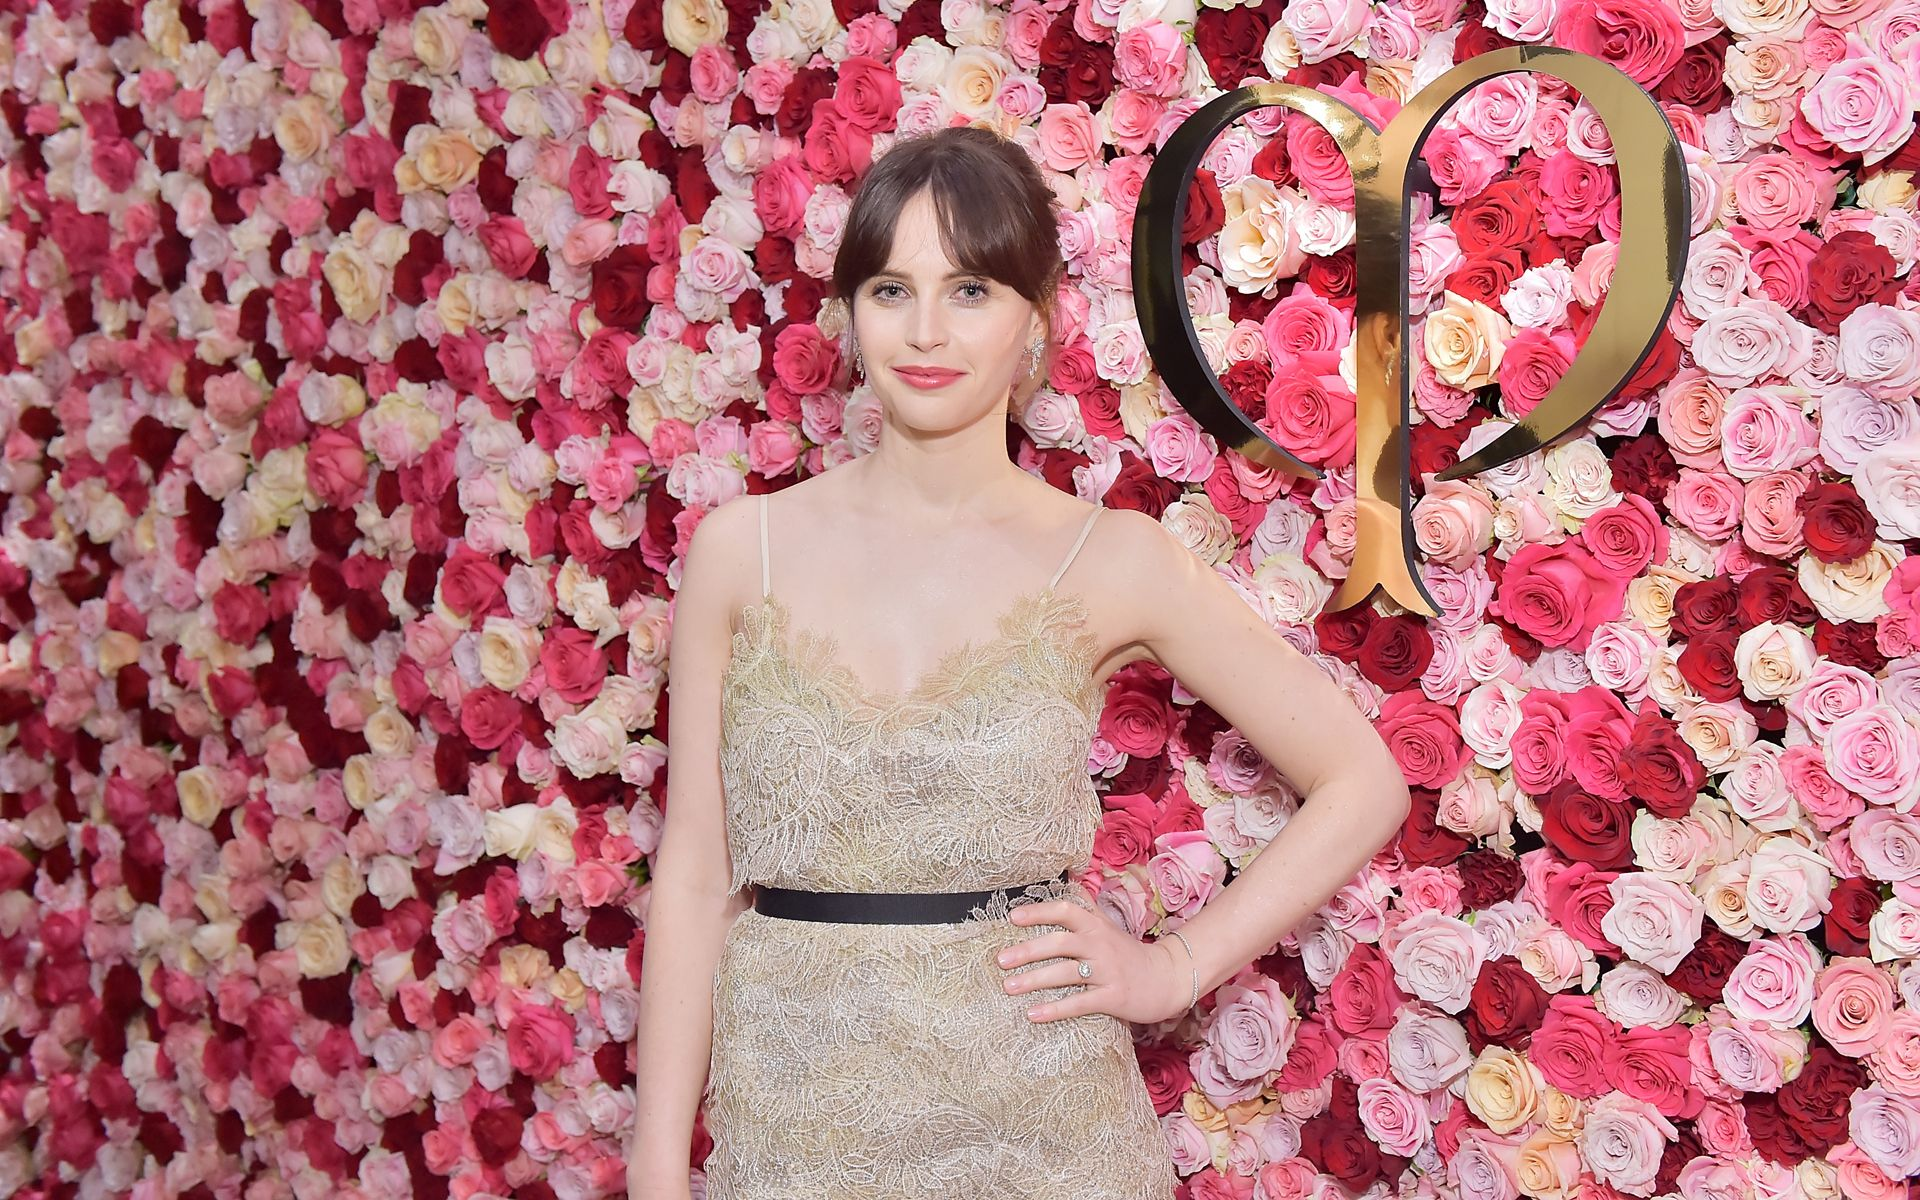 Felicity Jones Makes Her Debut In Los Angeles As The New Face Of Clé de Peau Beauté